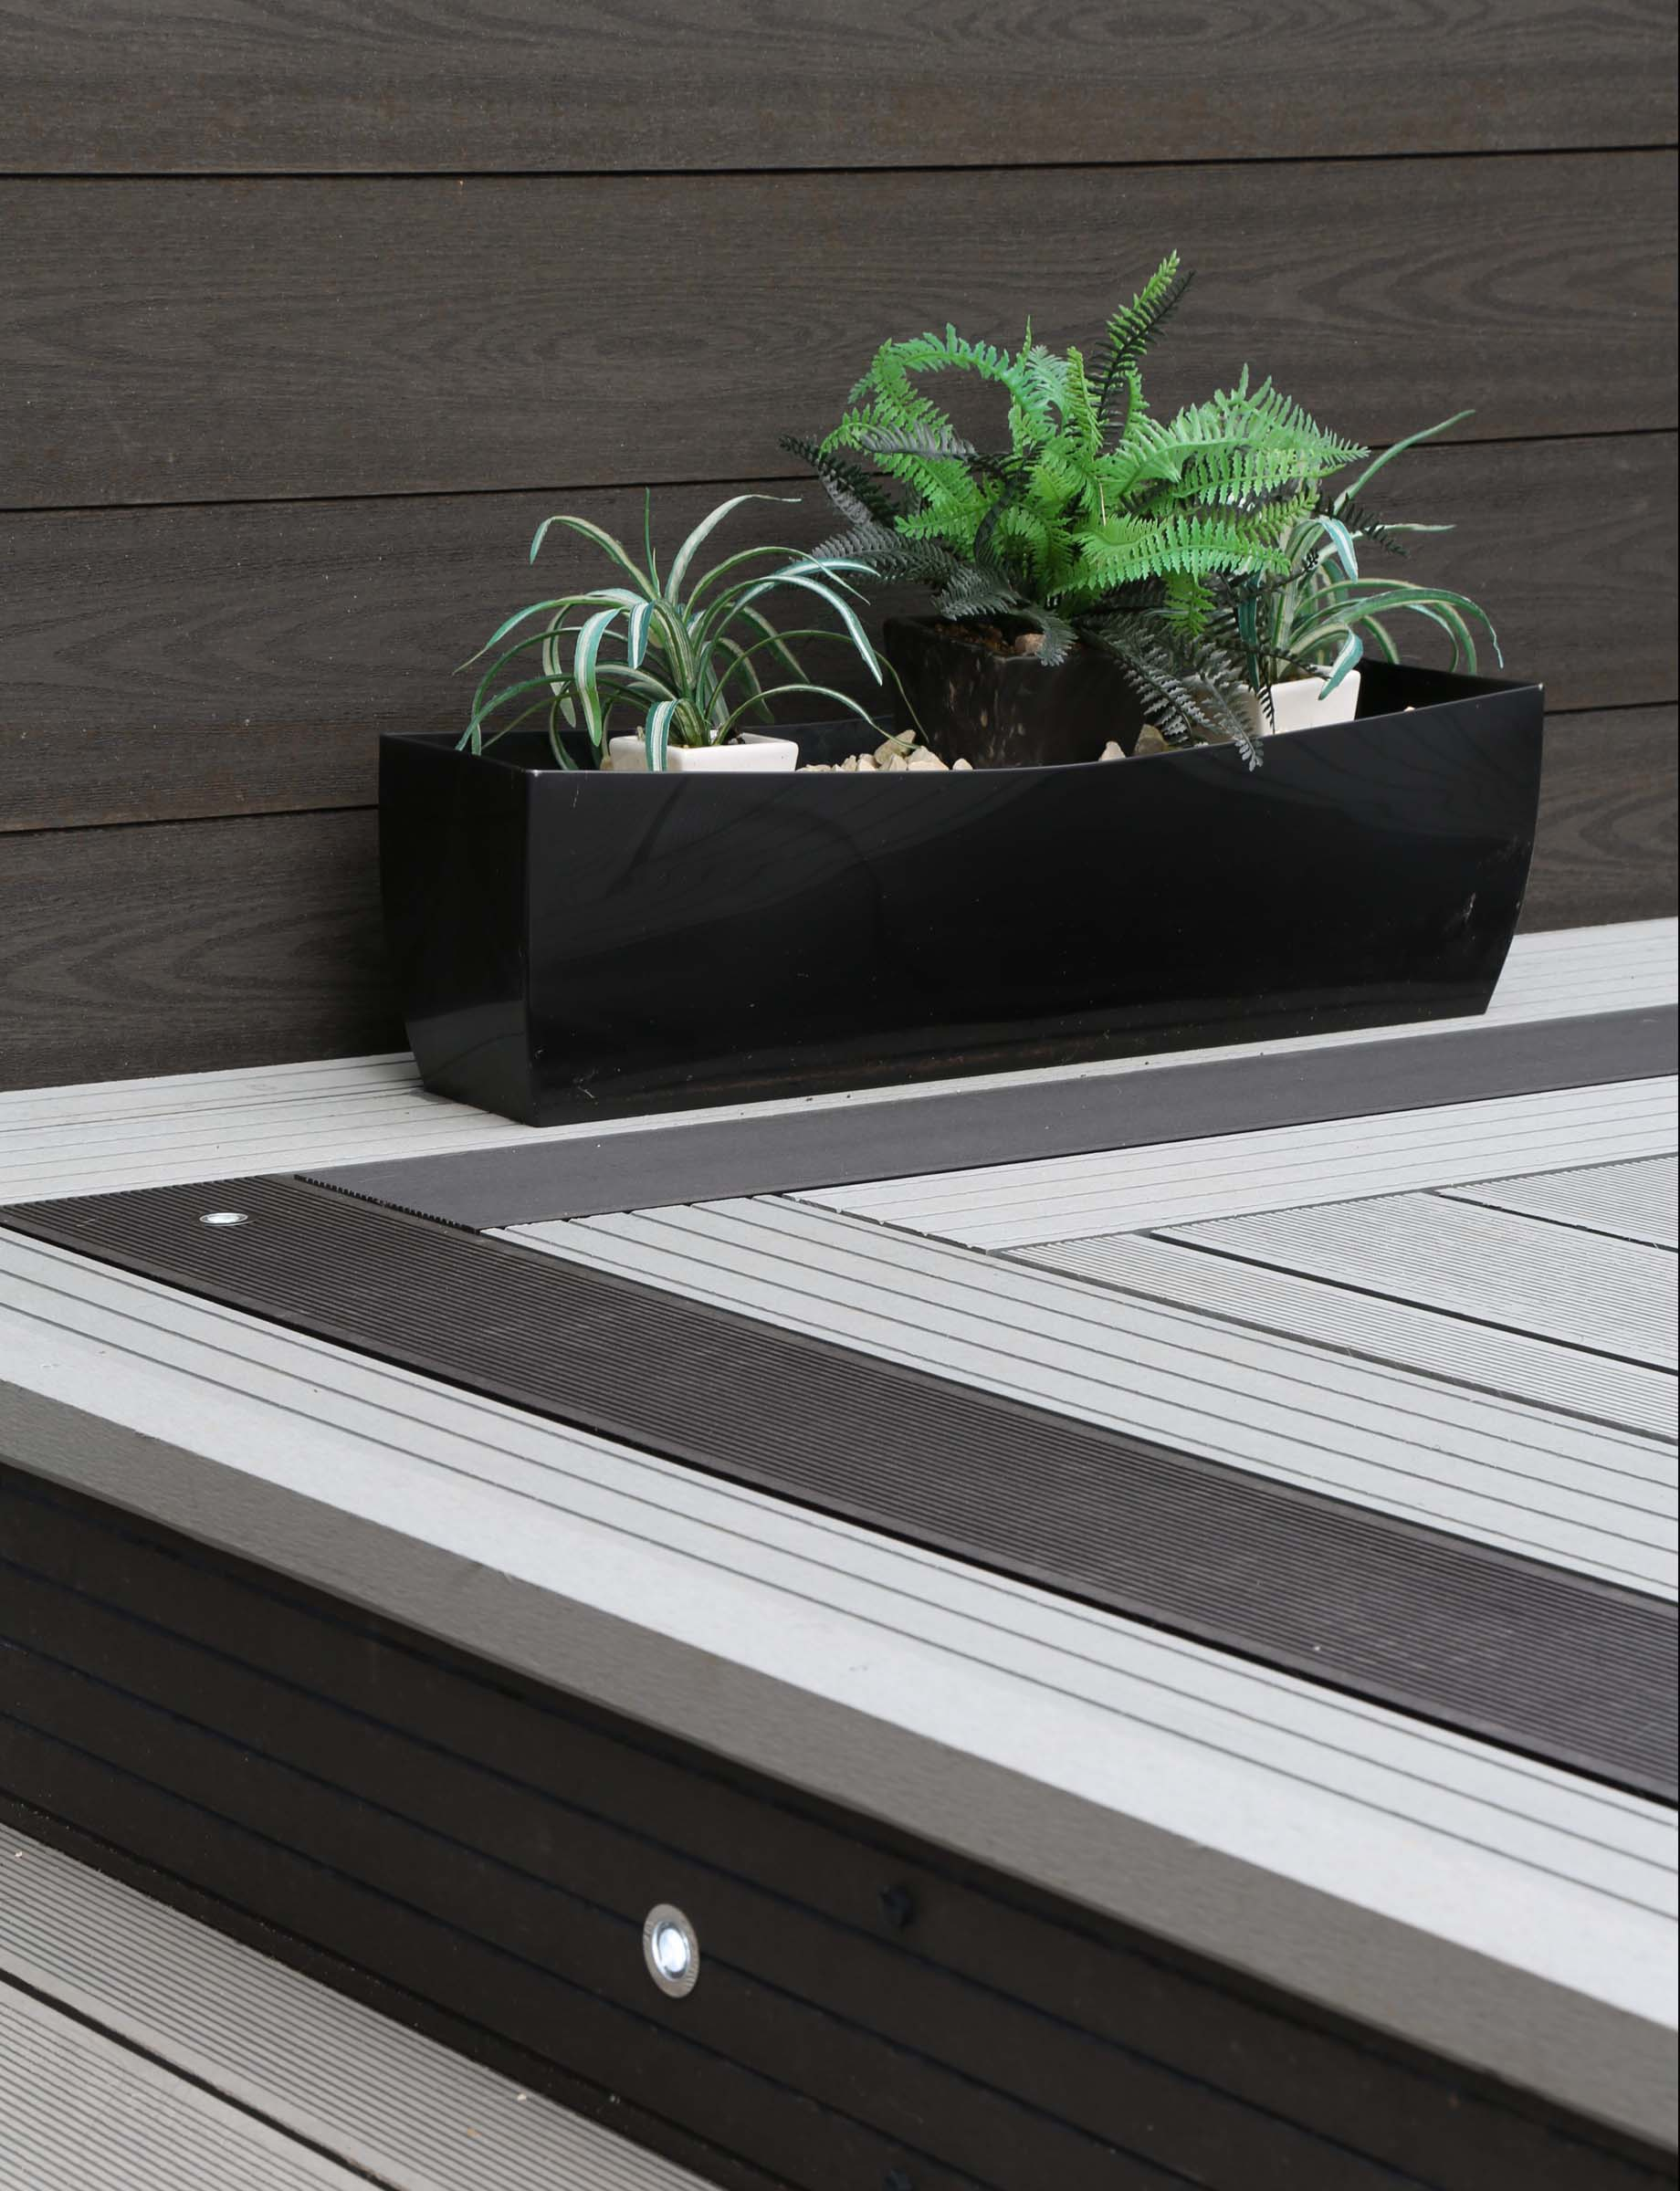 Plastic decking Vs Composite Decking.. What's the difference?